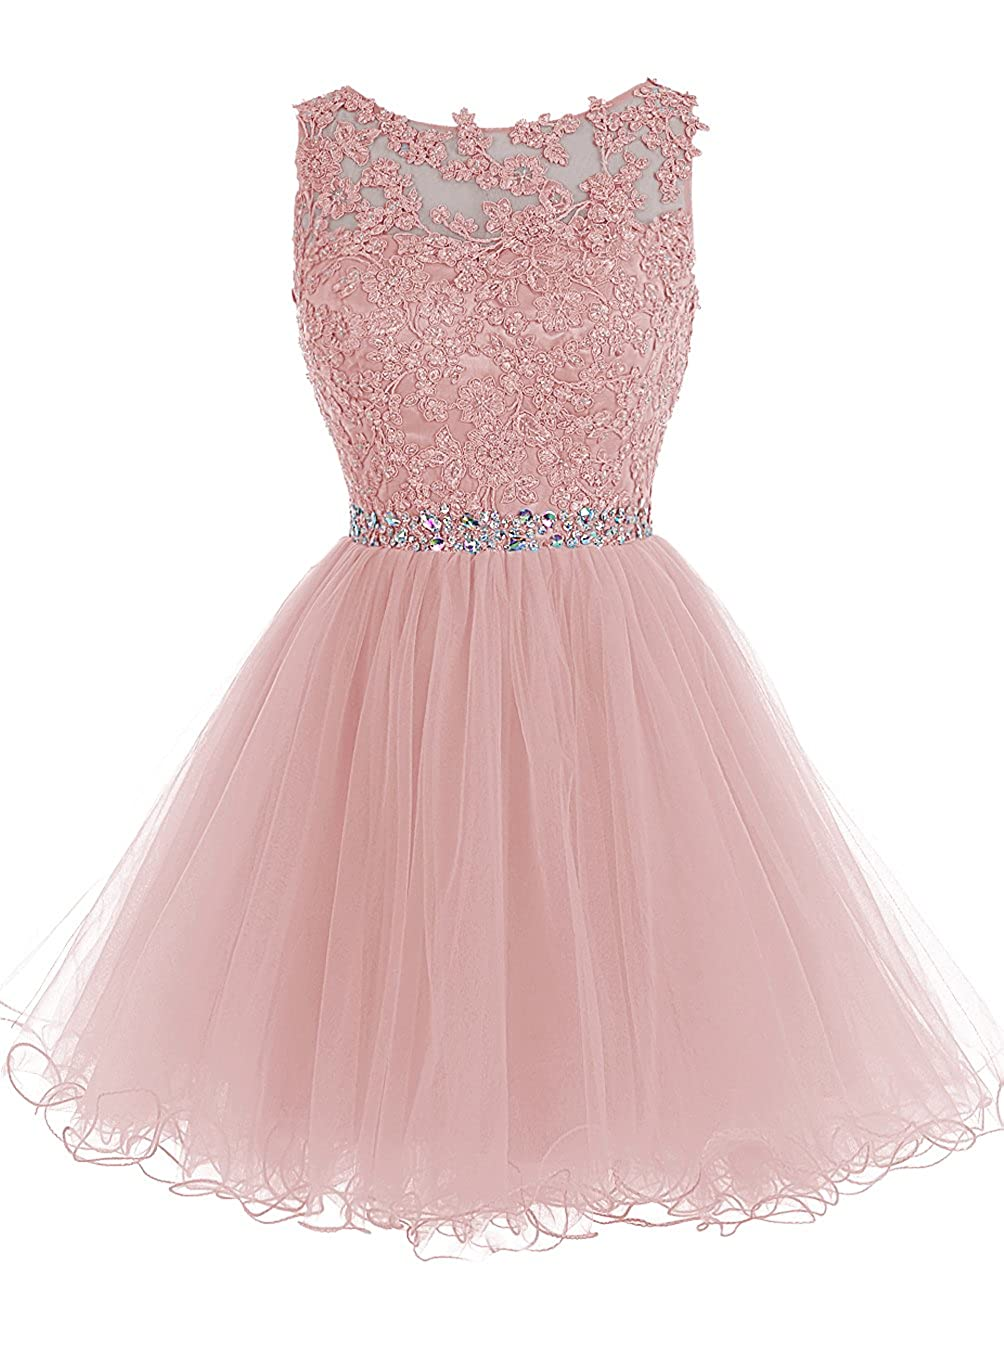 bluesh TideClothes Short Beaded Homecoming Dress Tulle Applique Prom Party Gowns